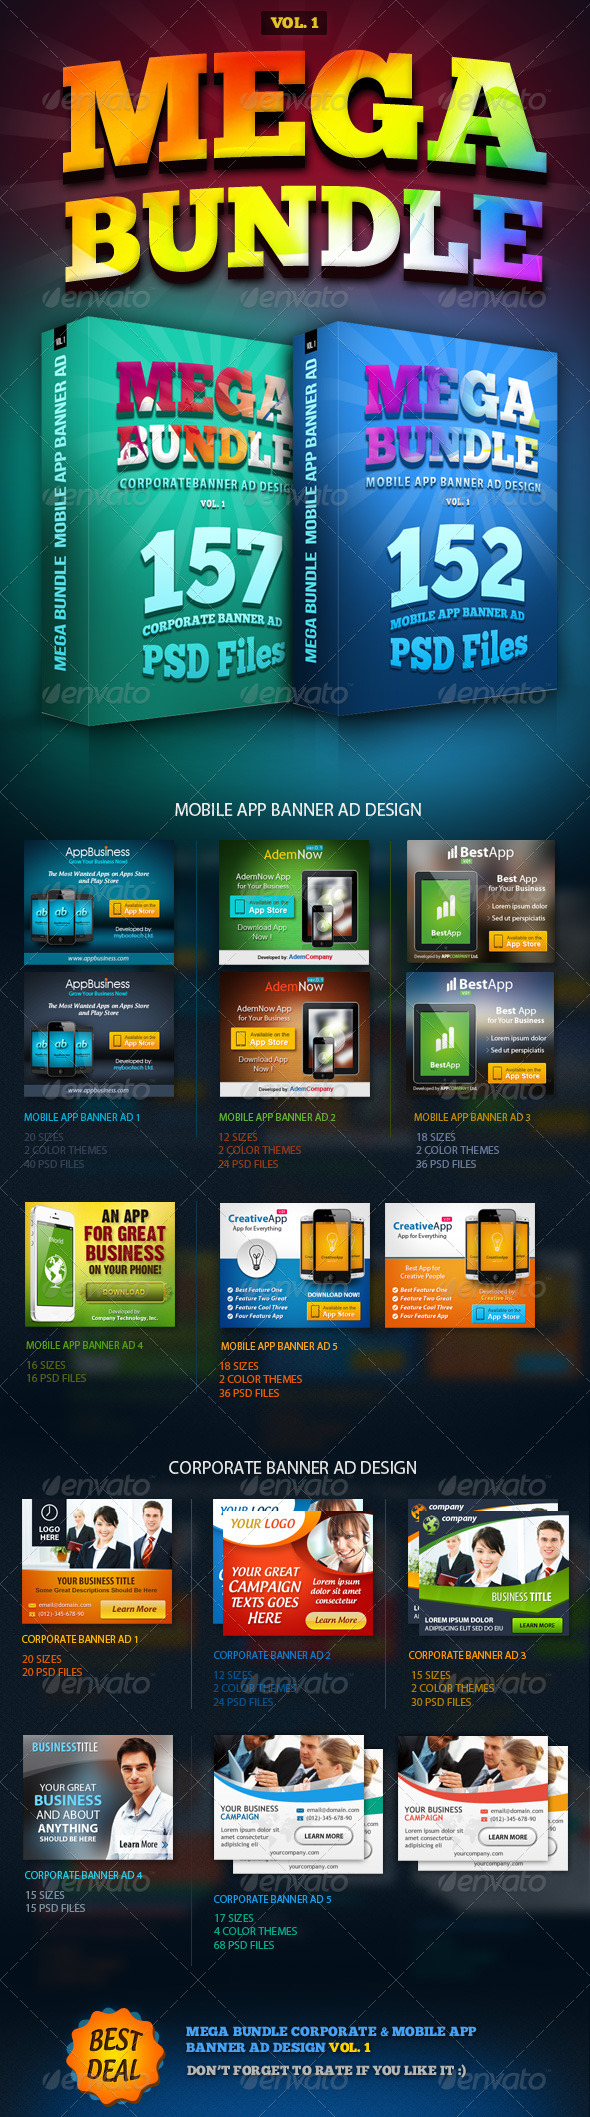 MEGA BUNDLE Vol.1 Corporate & Mobile App Banner Ad - Banners & Ads Web Elements